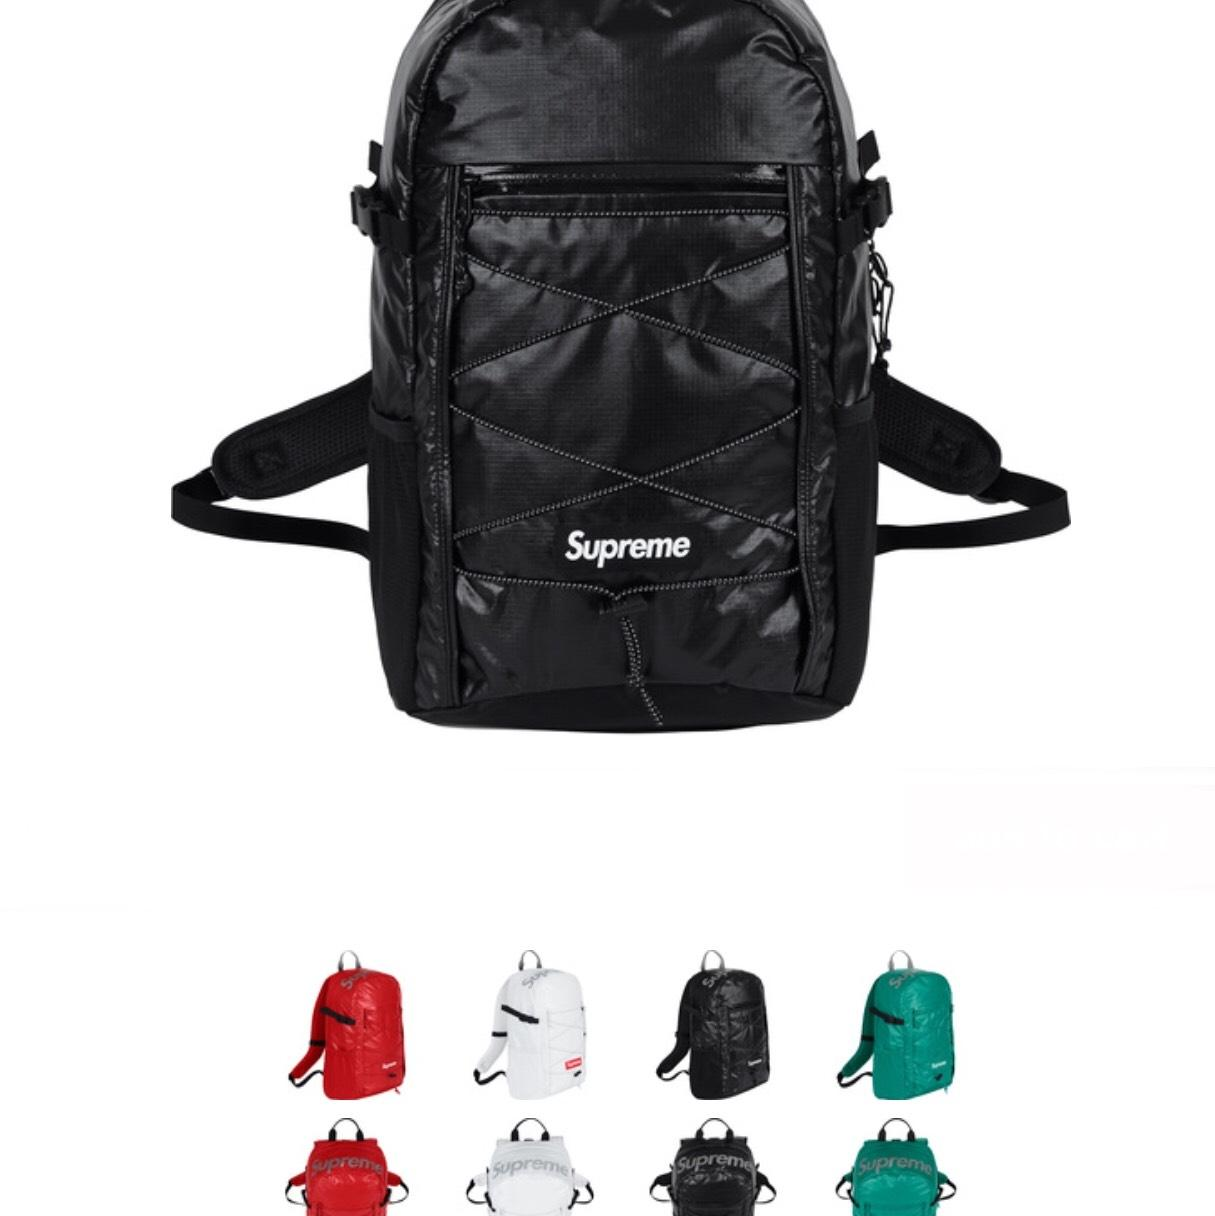 dd136febb31b supreme backpack cheap   OFF45% The Largest Catalog Discounts